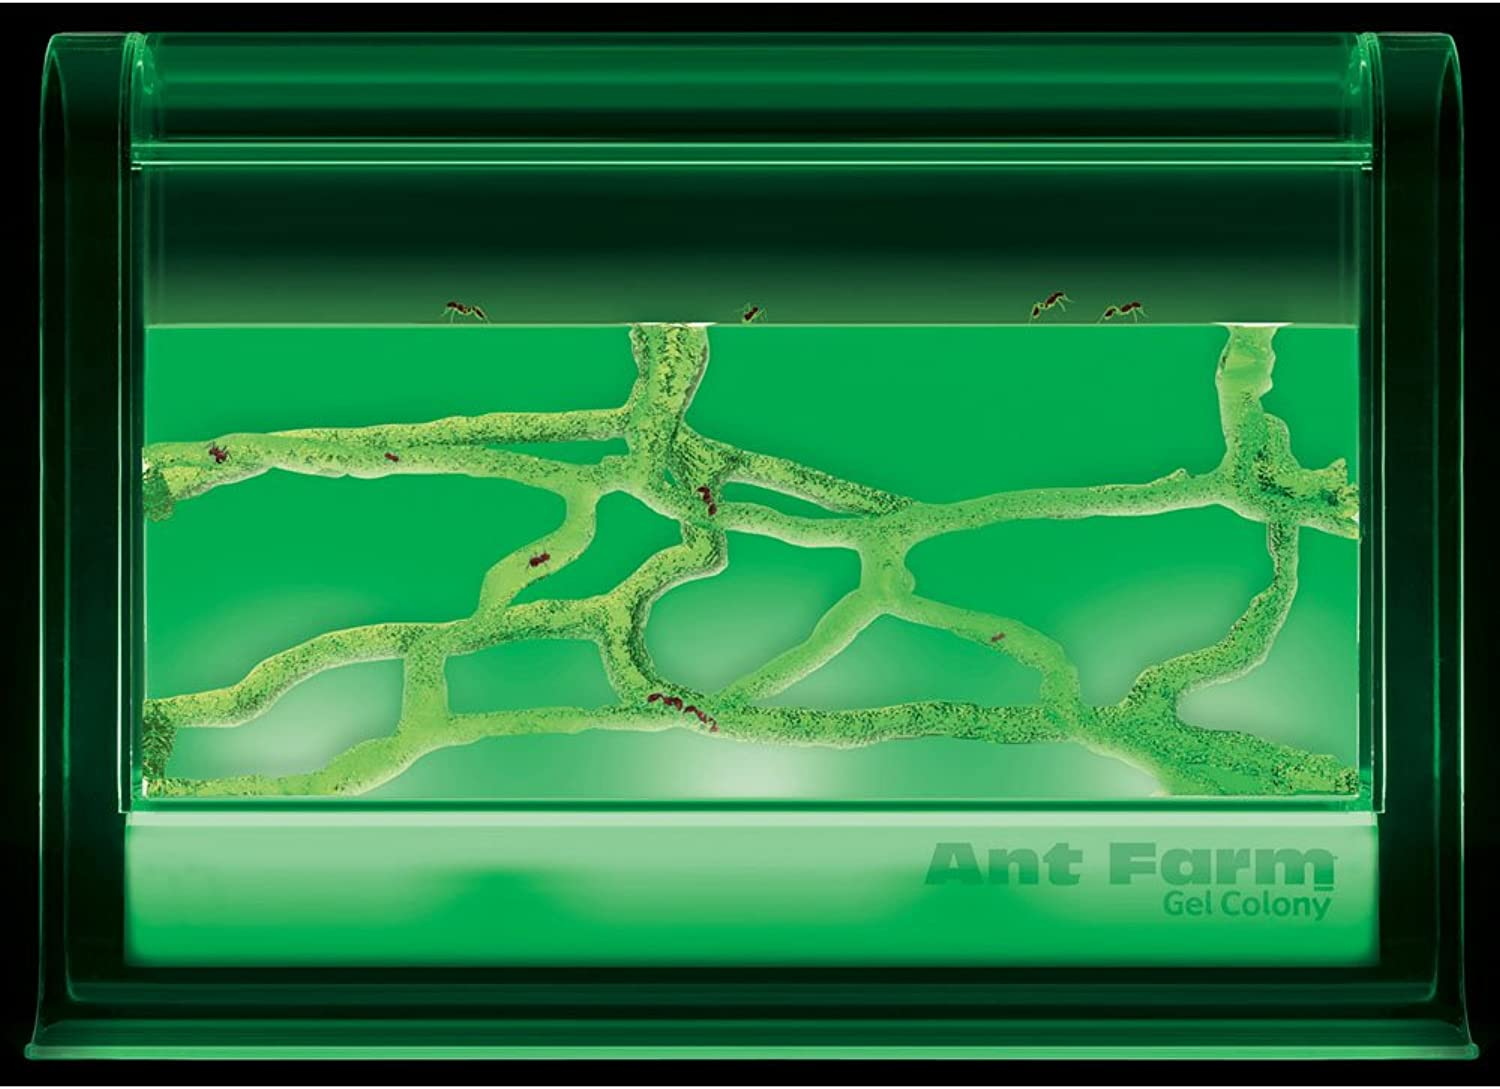 Uncle Milton Ant Farm Illuminated Gel Colony